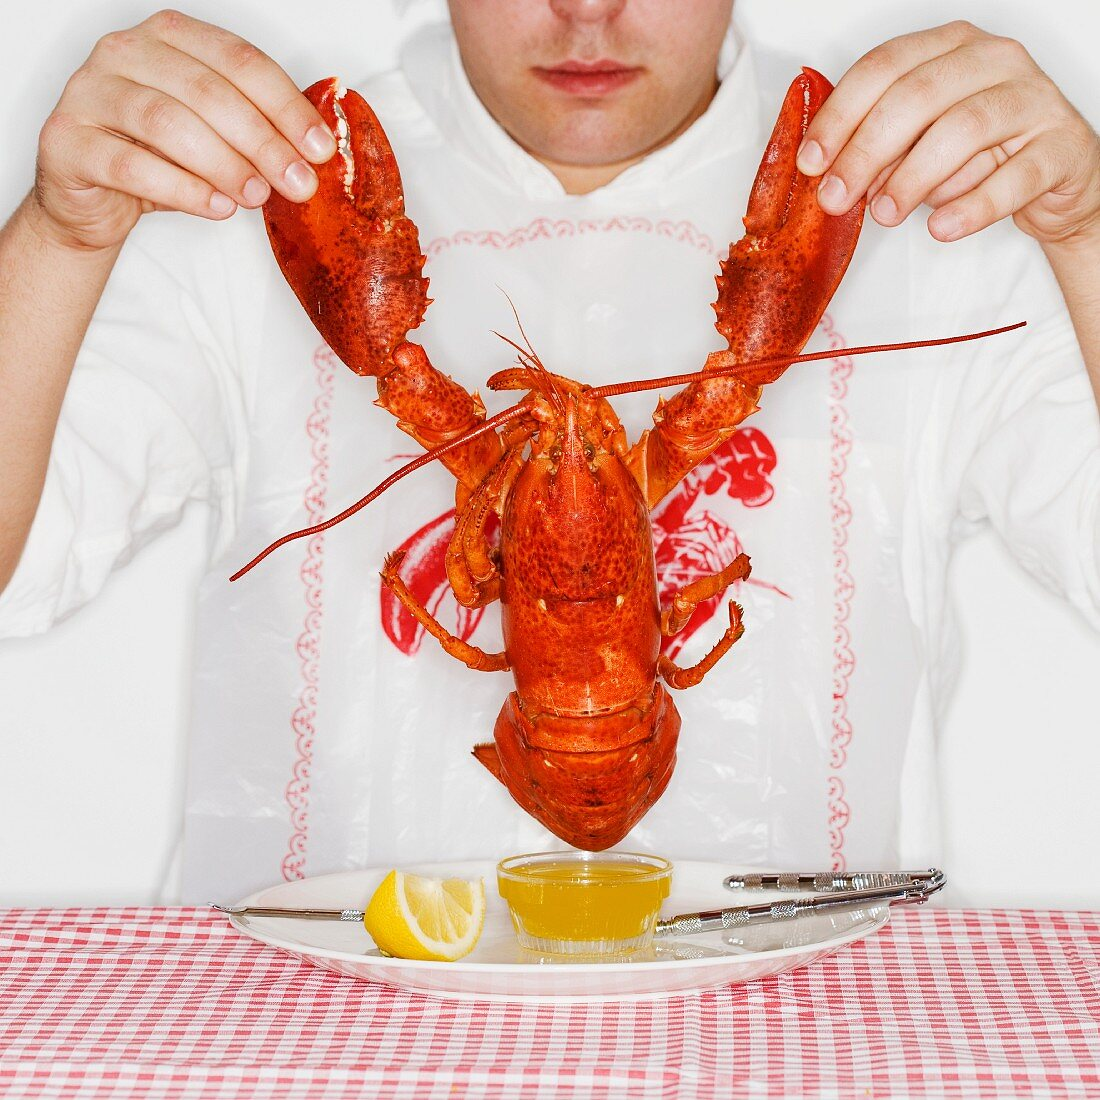 Man dining with an entire lobster